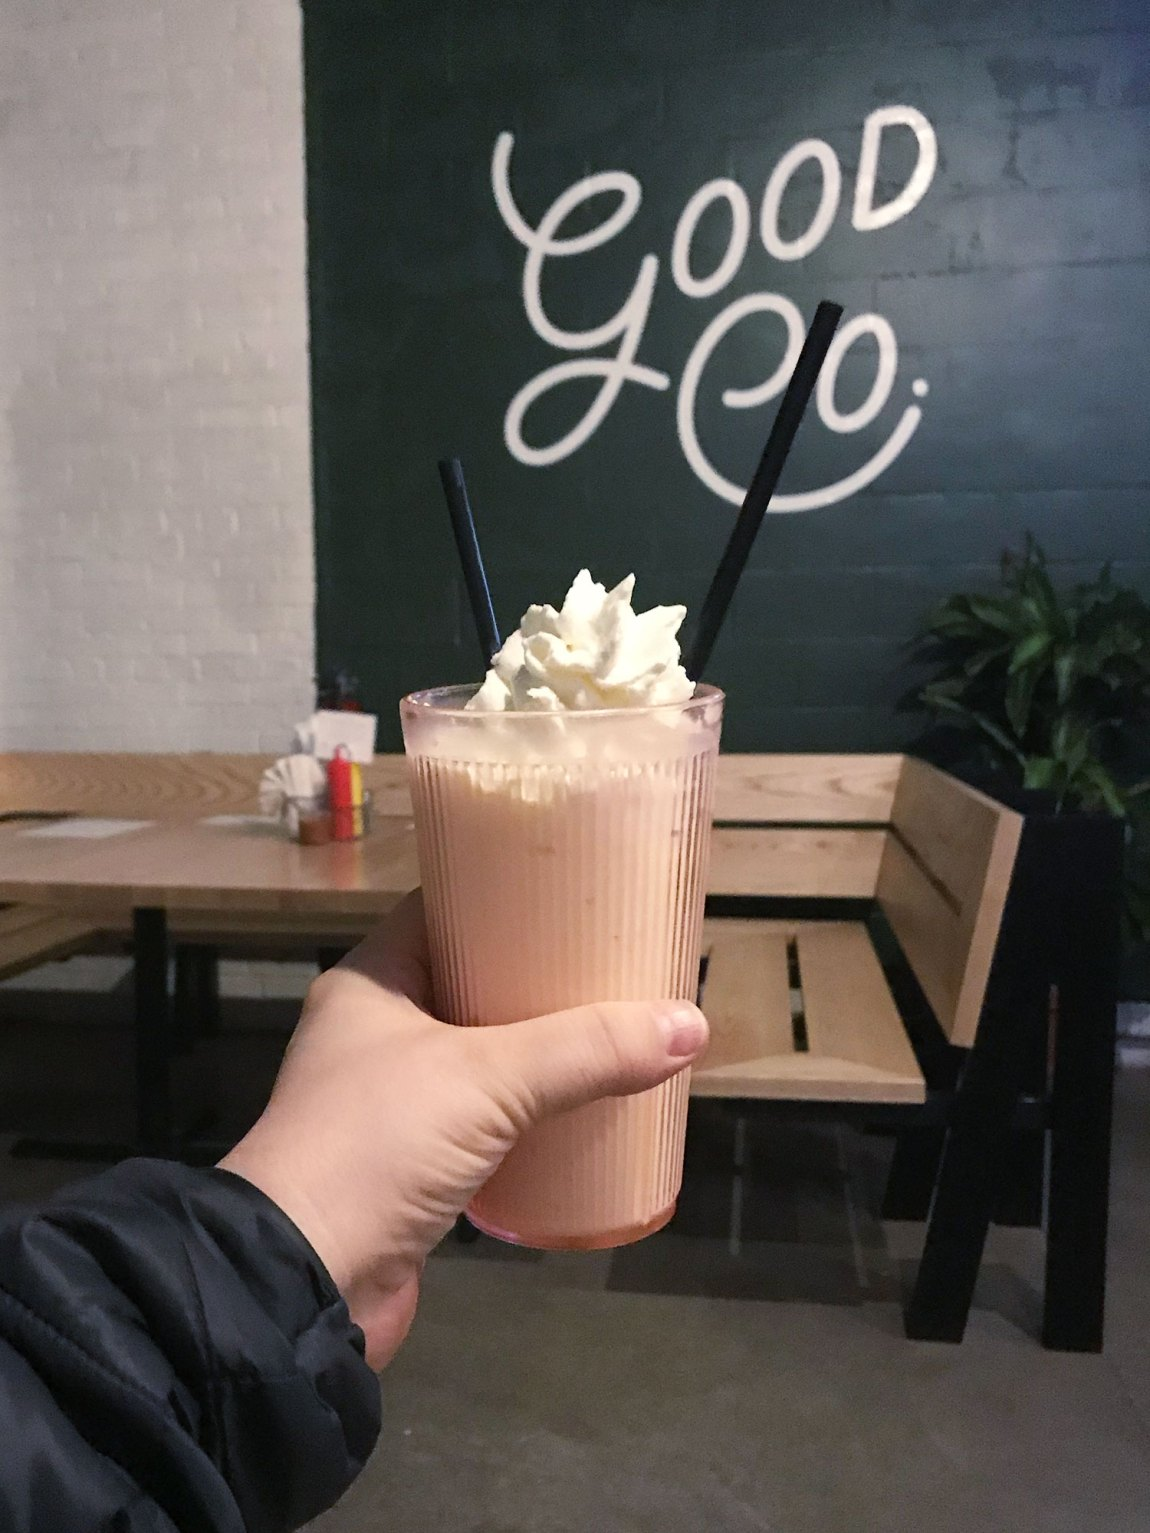 Milkshake at Good Co.